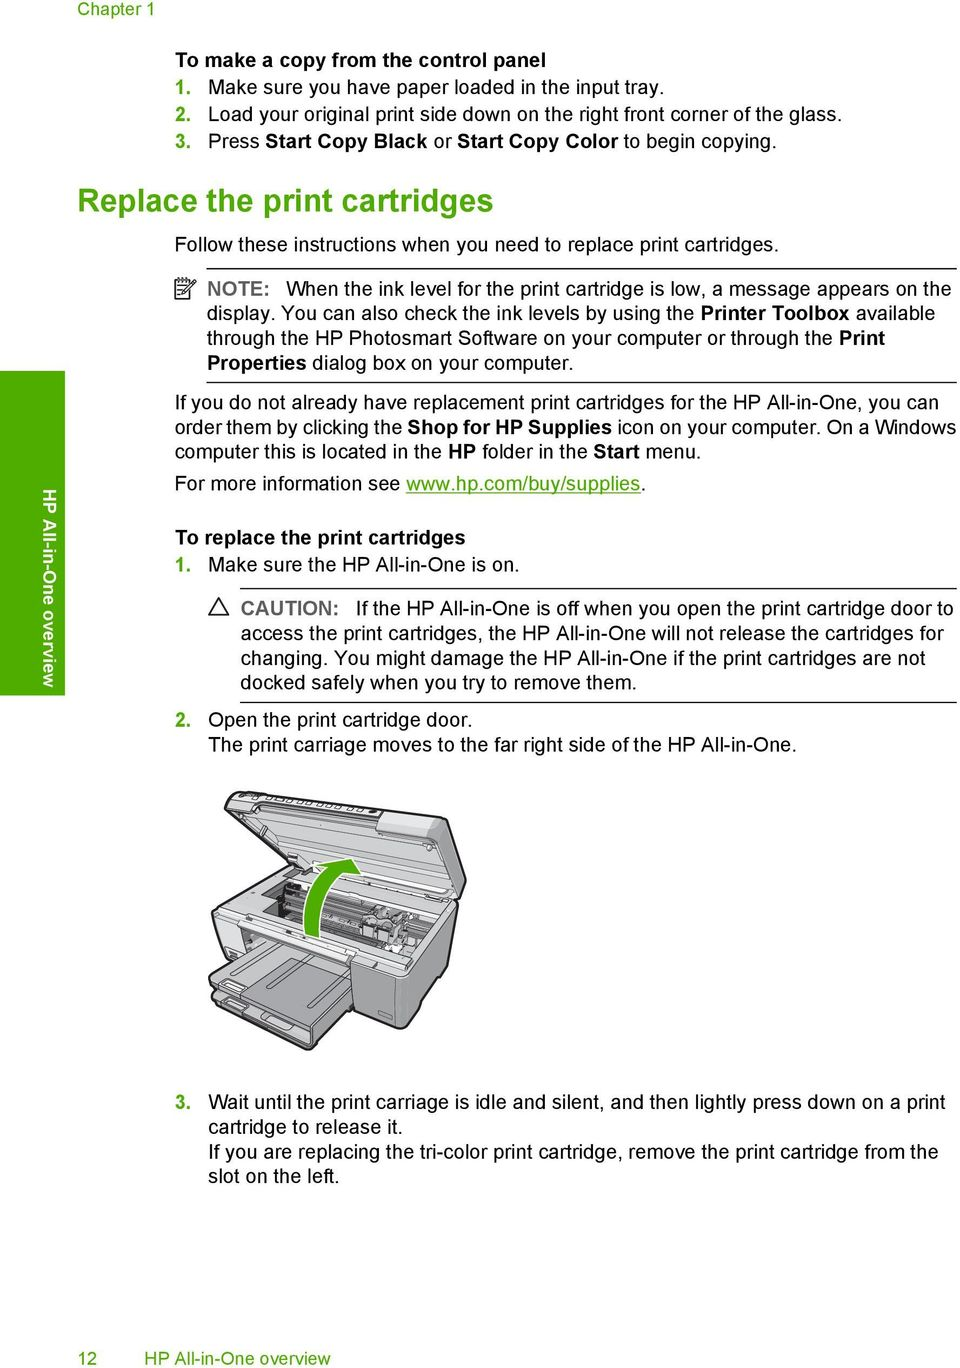 HP Photosmart C5200 All-in-One series  Basics Guide - PDF